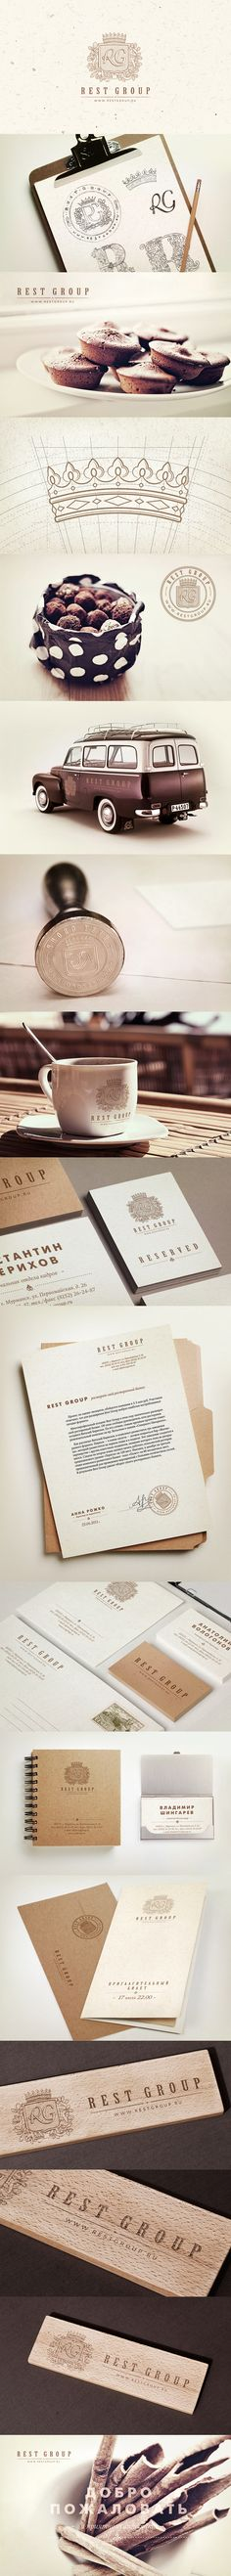 By Eskimo Design, Russia. | #stationary #corporate #design #corporatedesign #logo #identity #branding #marketing (sample)